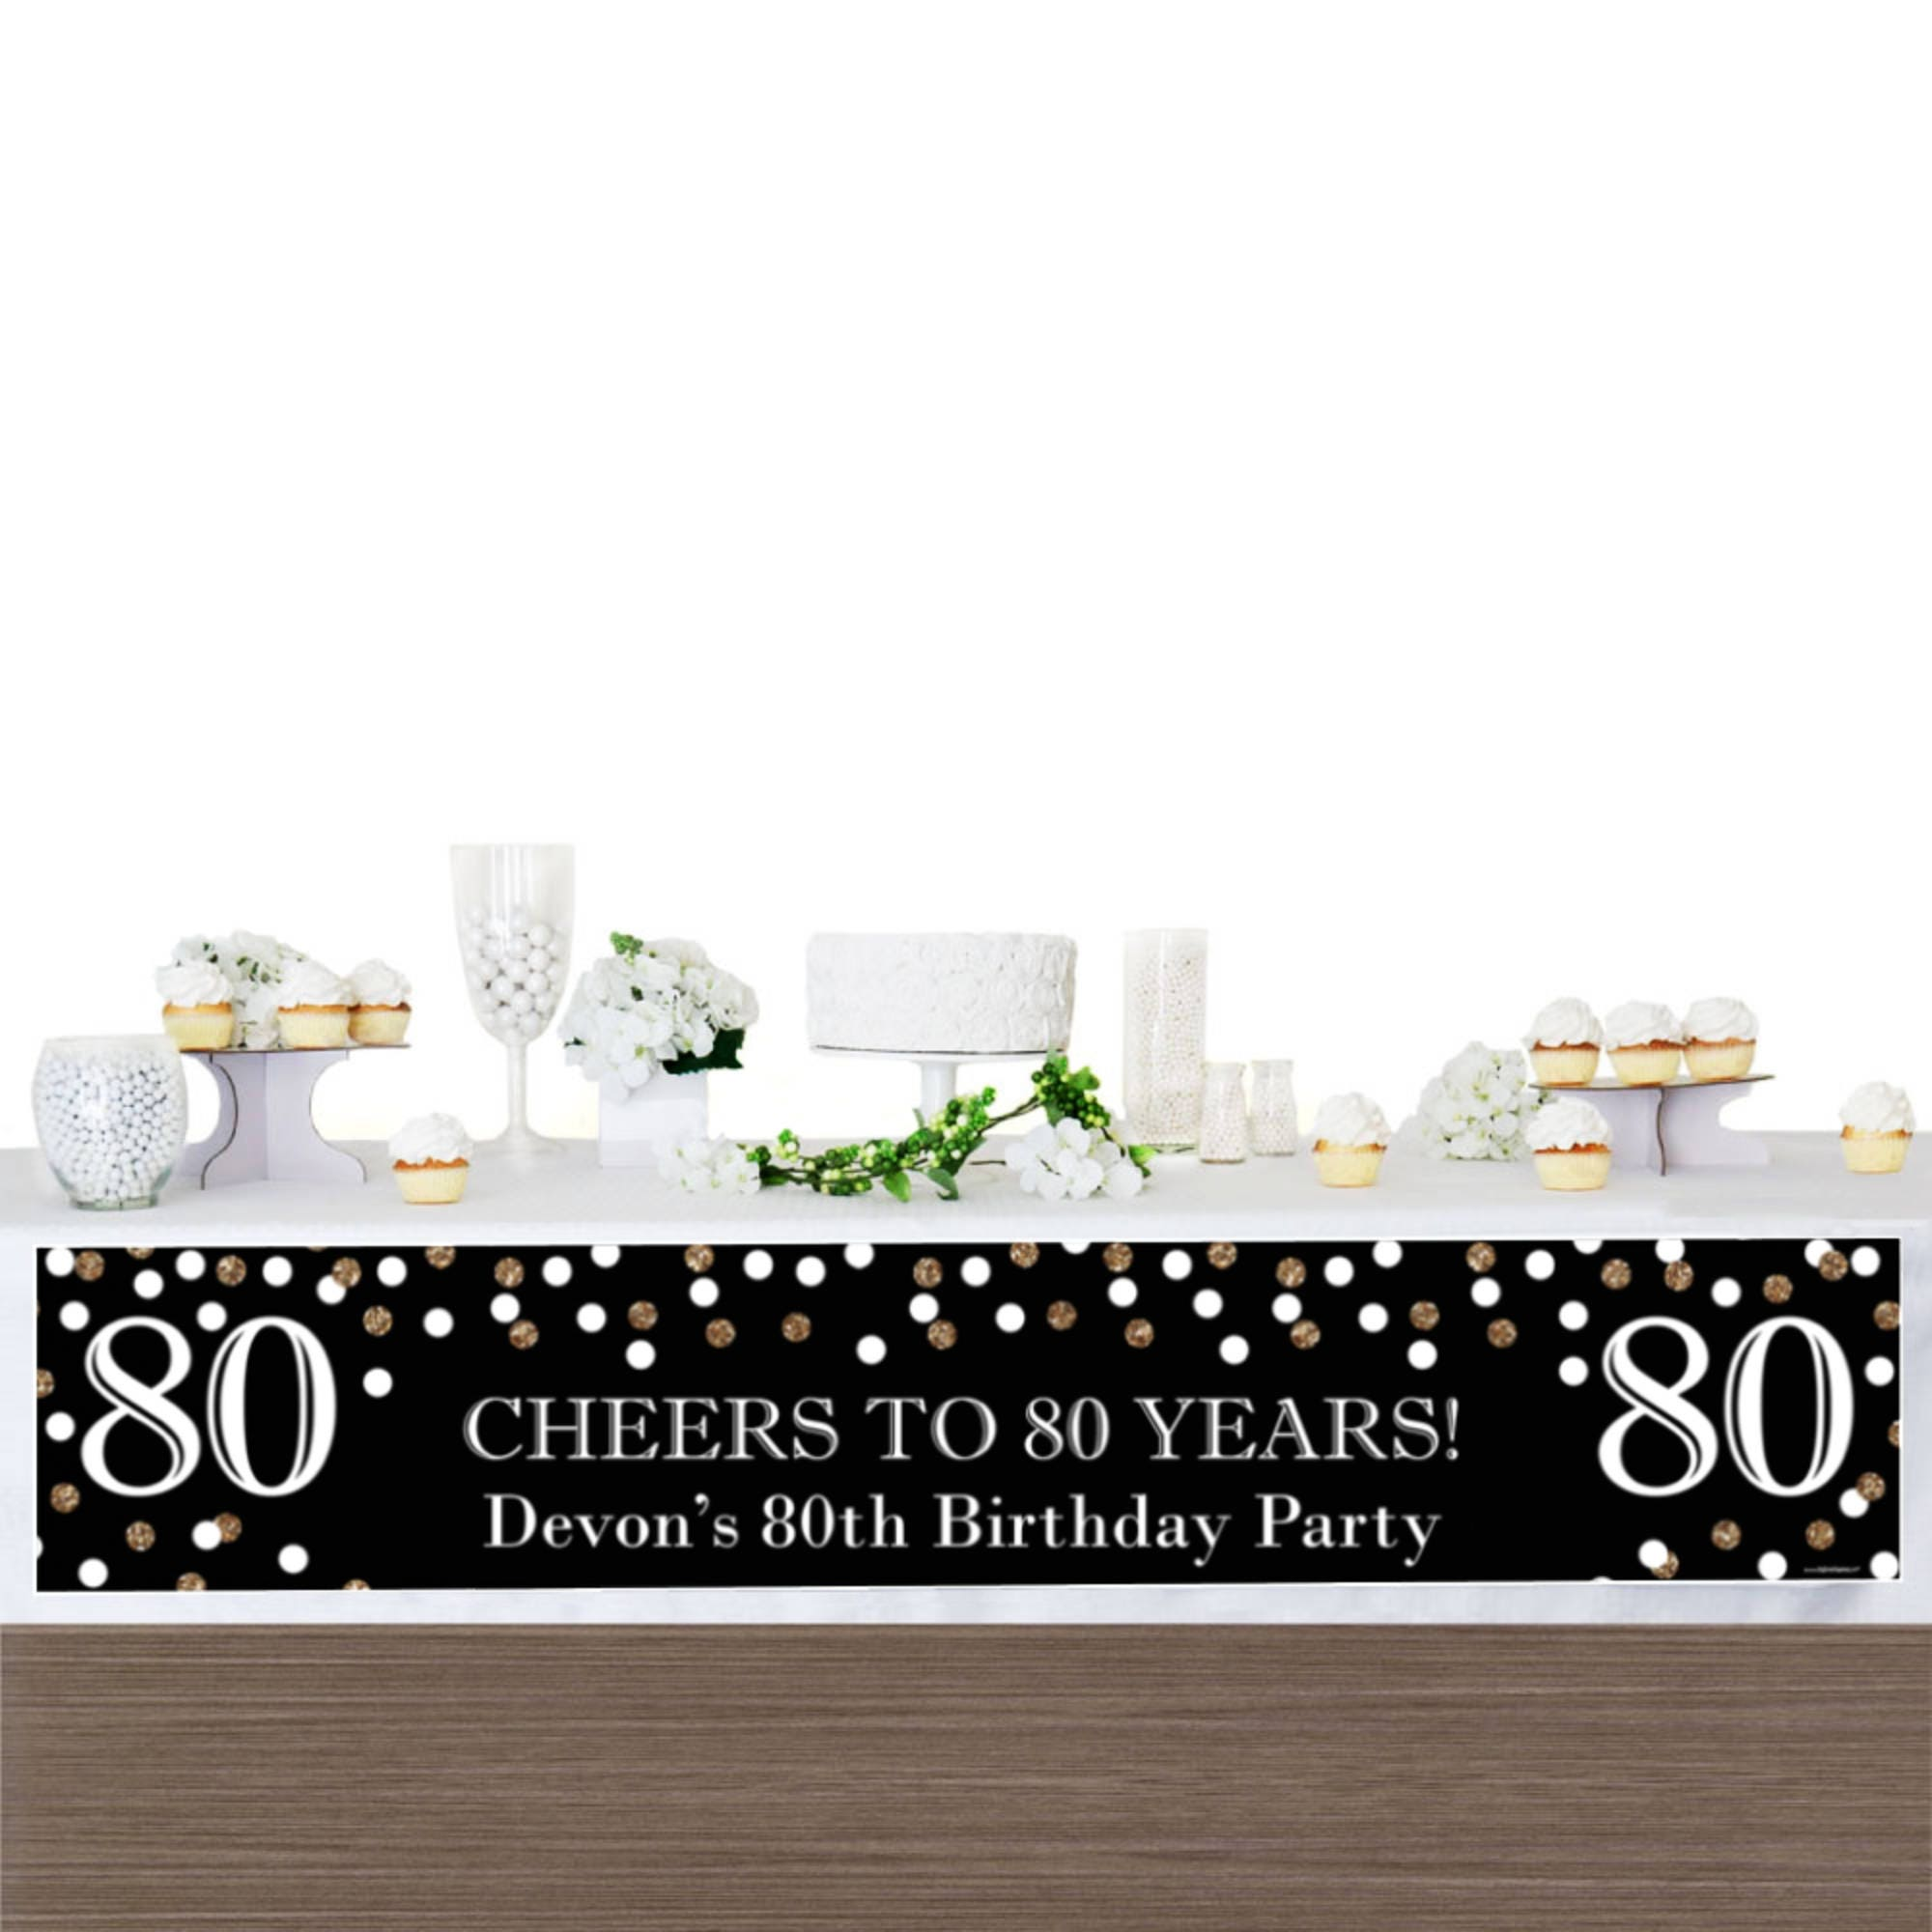 80th Birthday Party Banner Birthday Party Decorations 80th